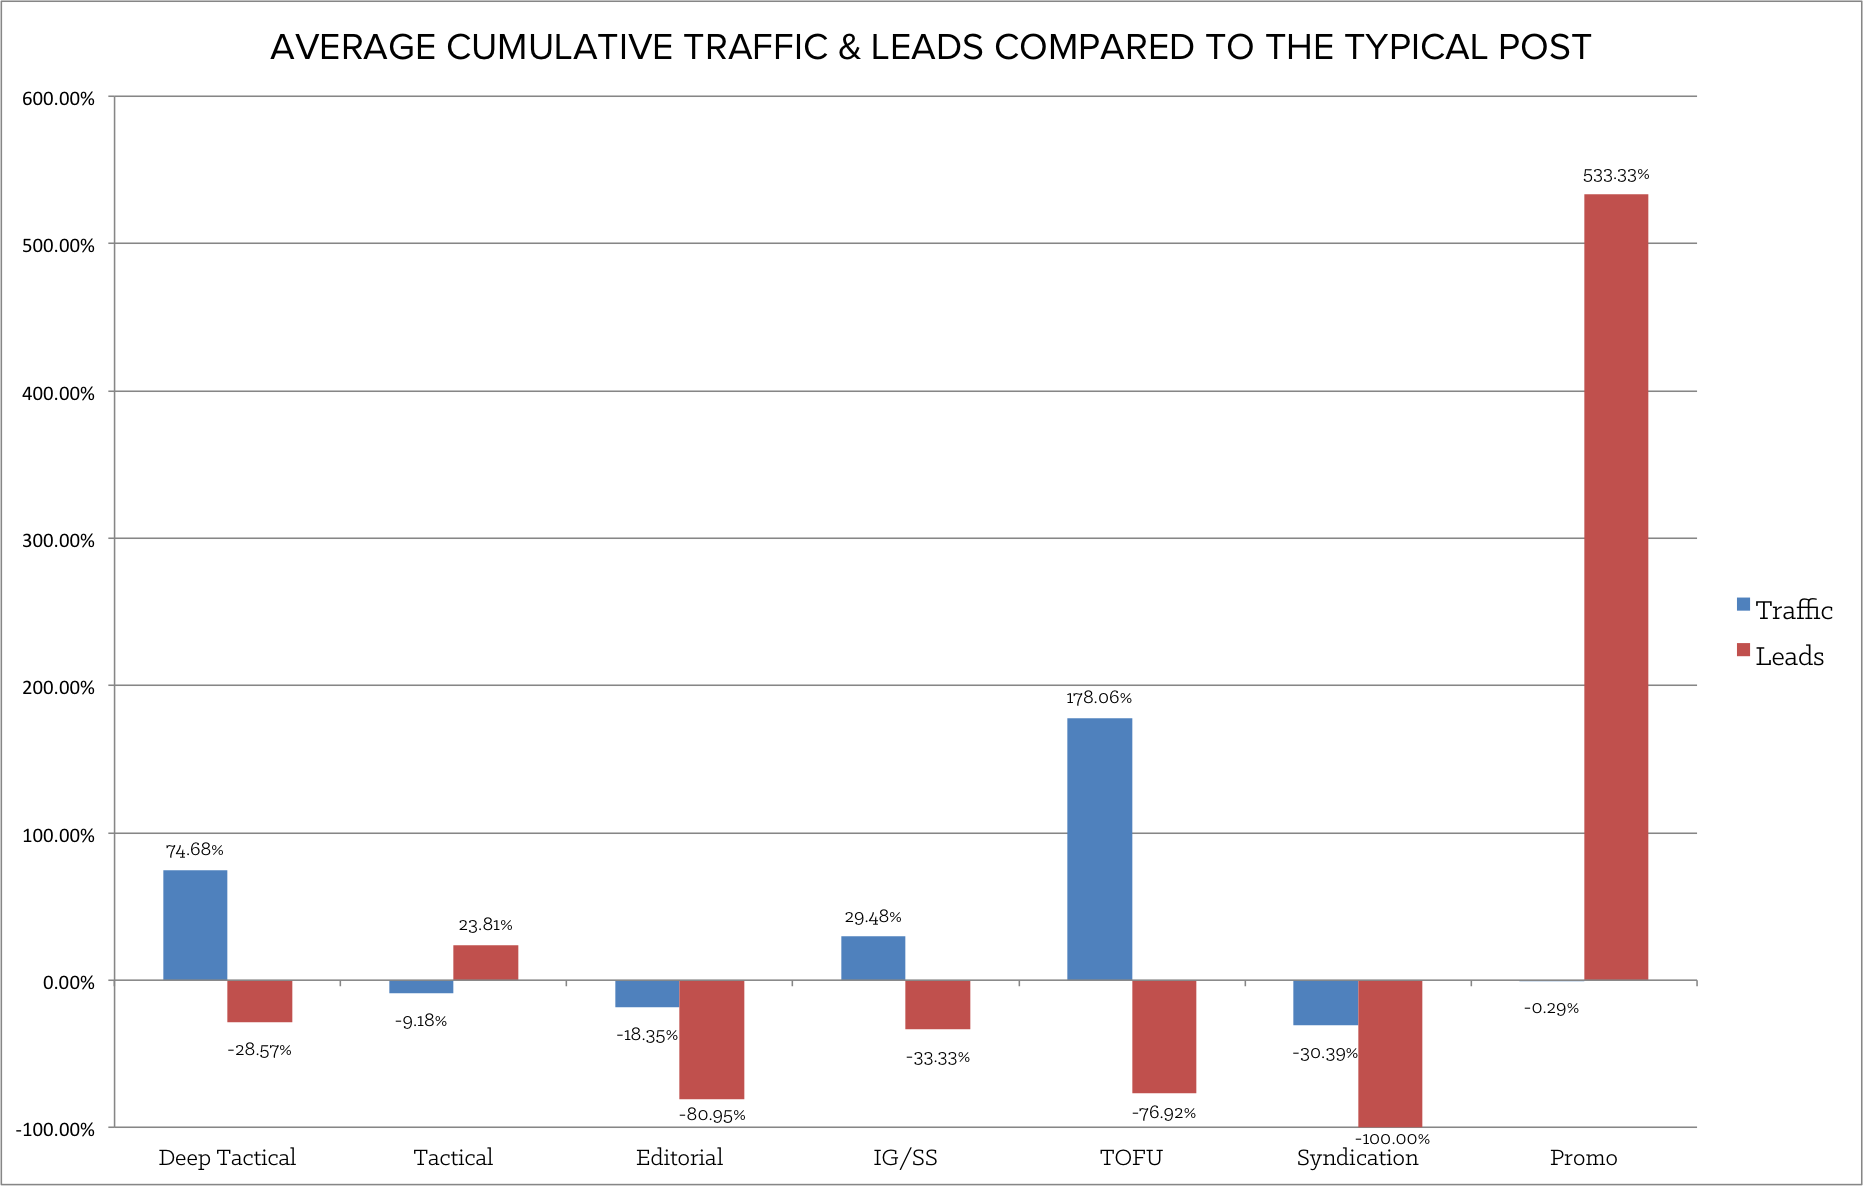 comparing_traffic_and_leads_to_typical_post-1.png